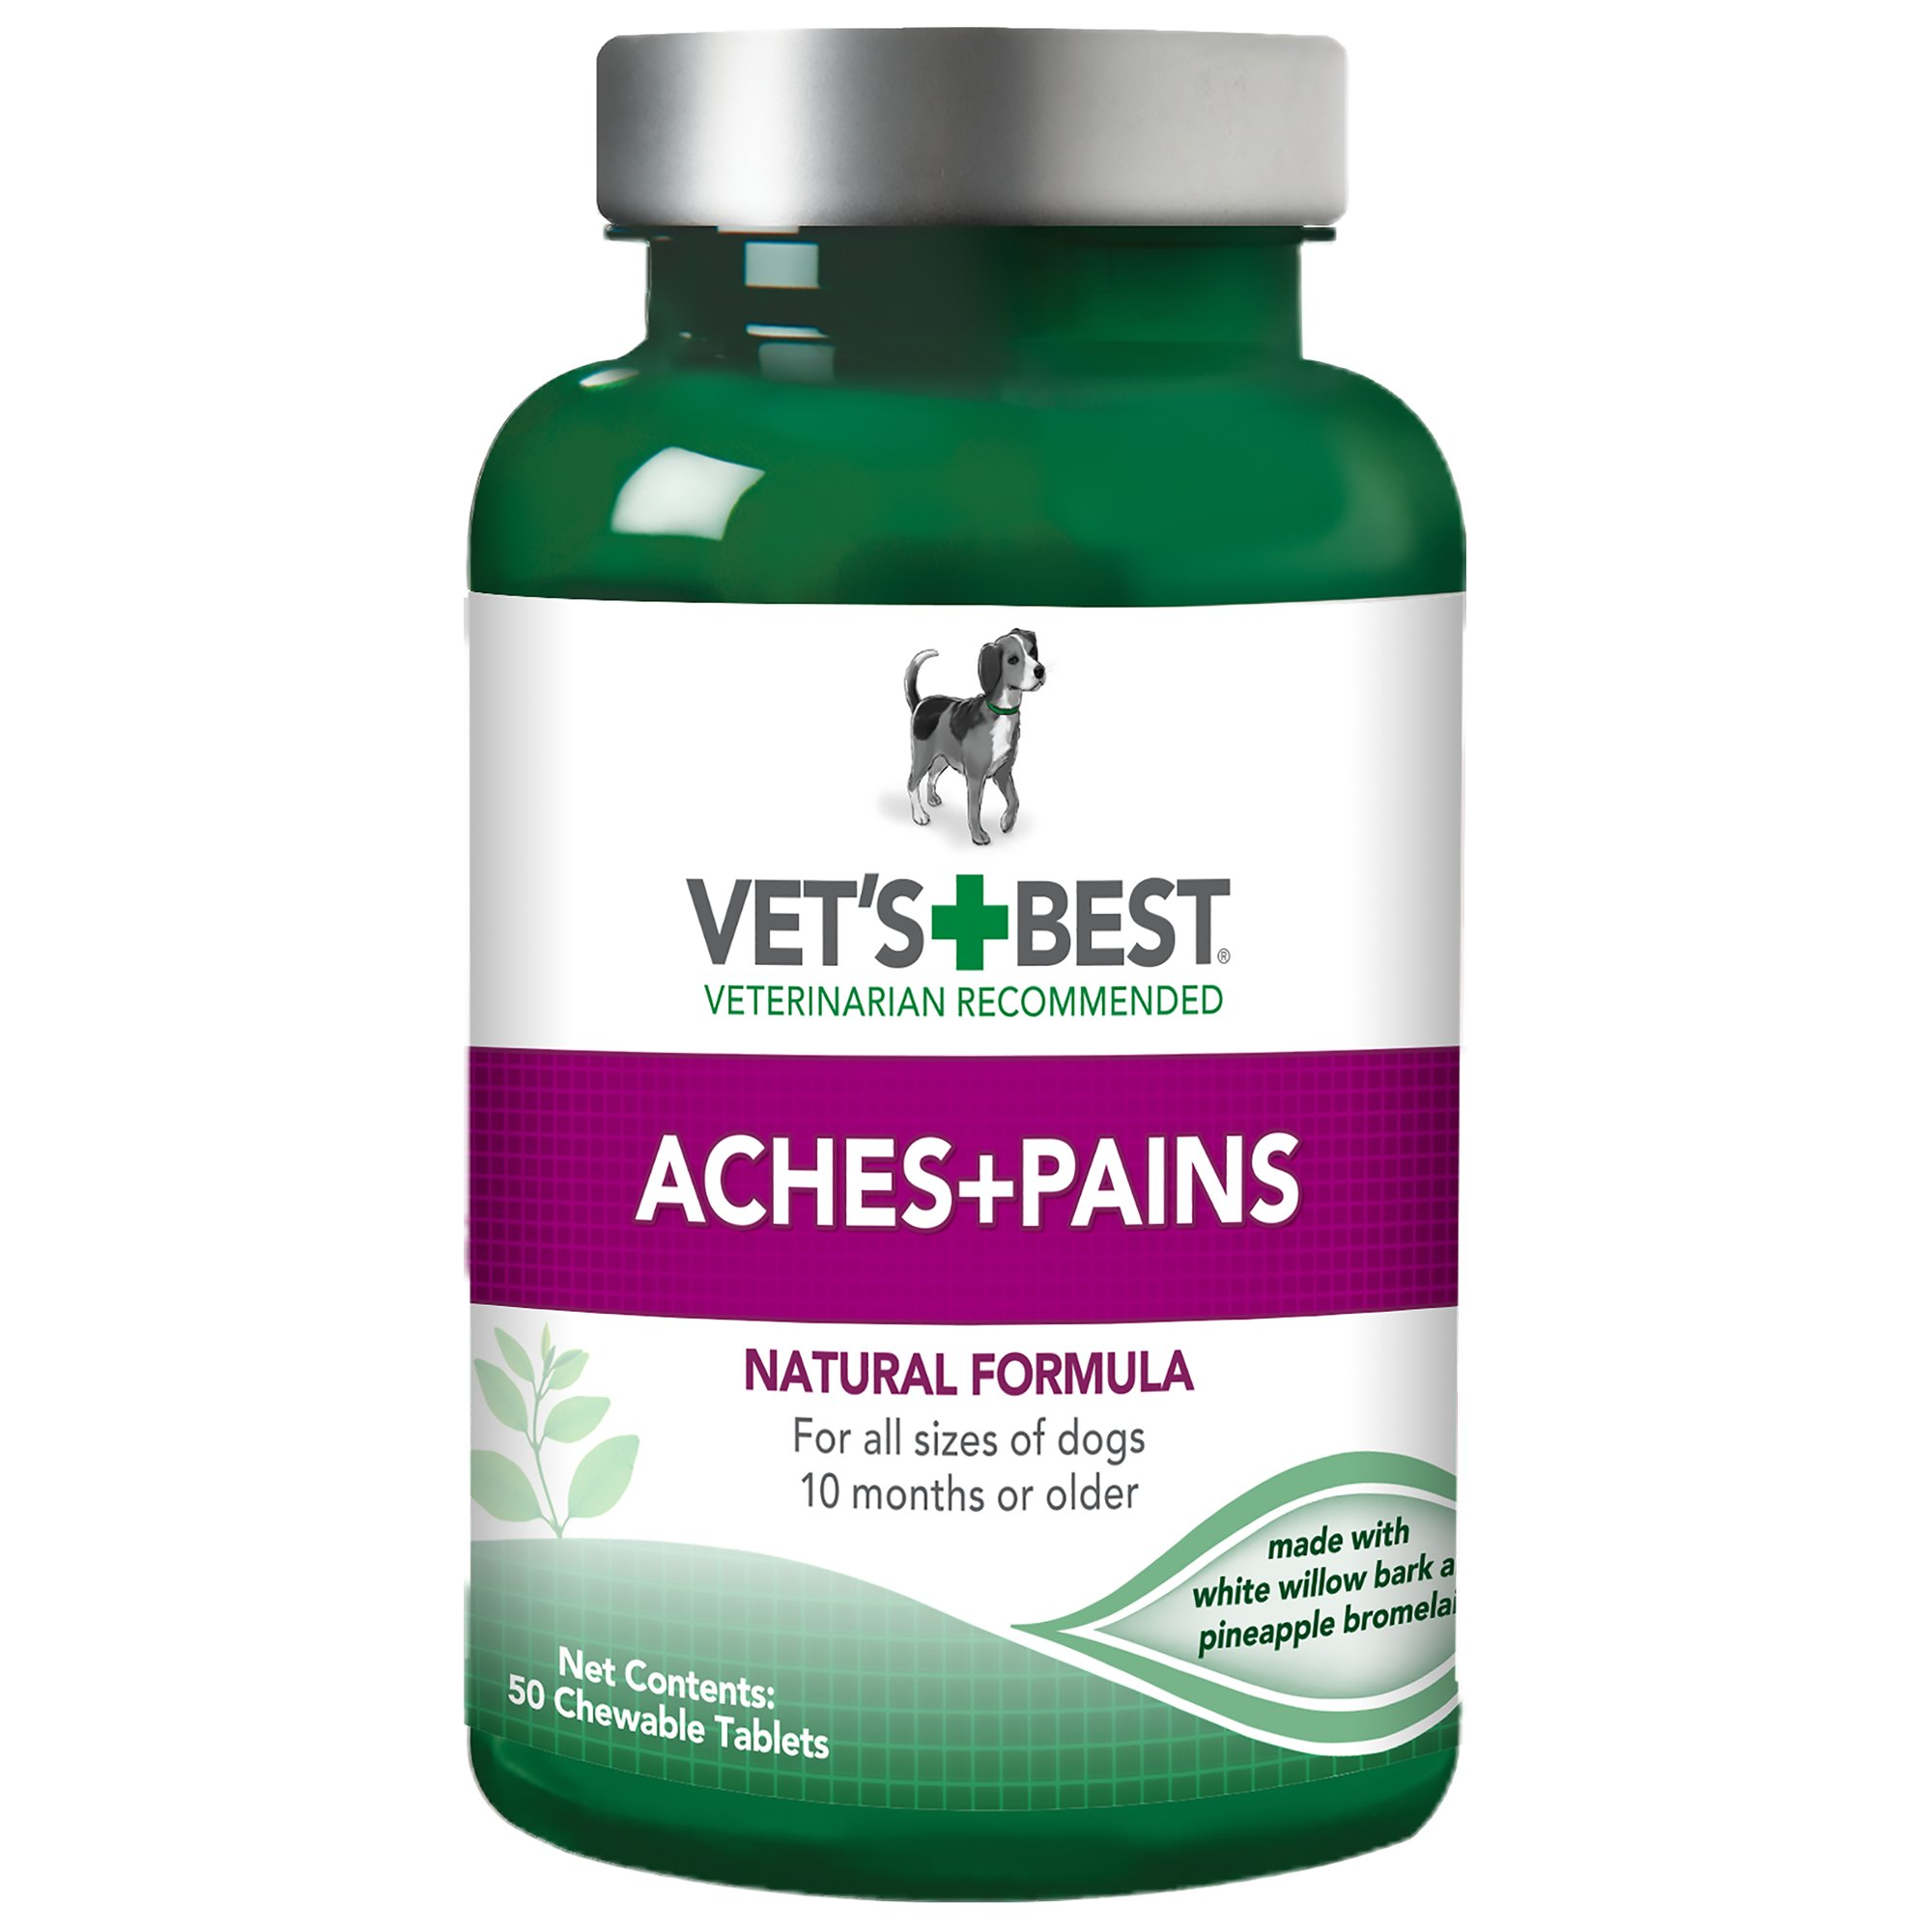 Vet's Best Aches & Pains for Dogs